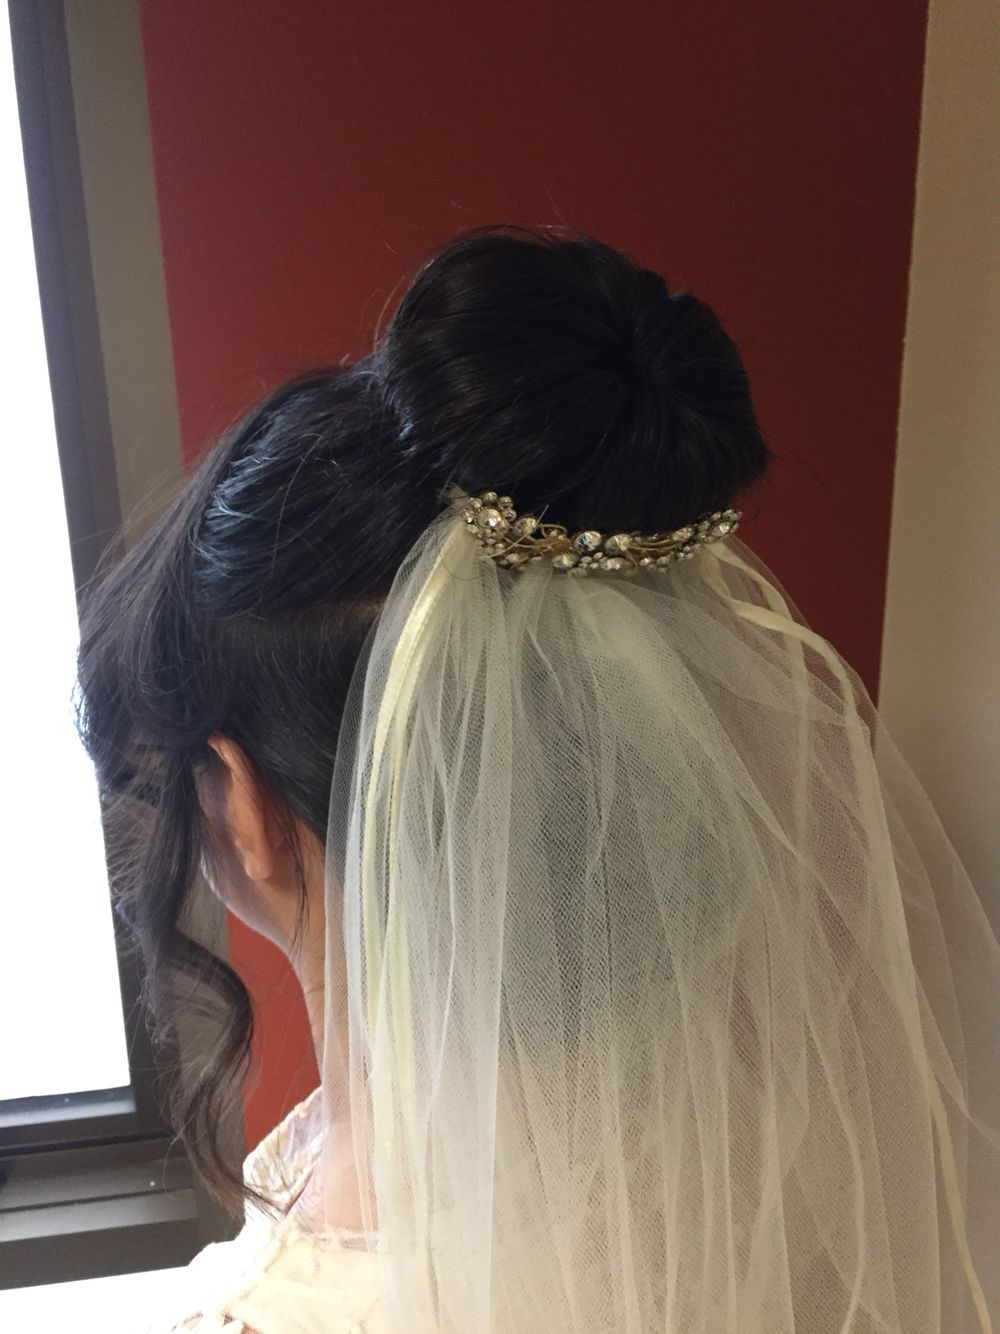 An upstyle bun curled tendrils at the front and veil placed in the back